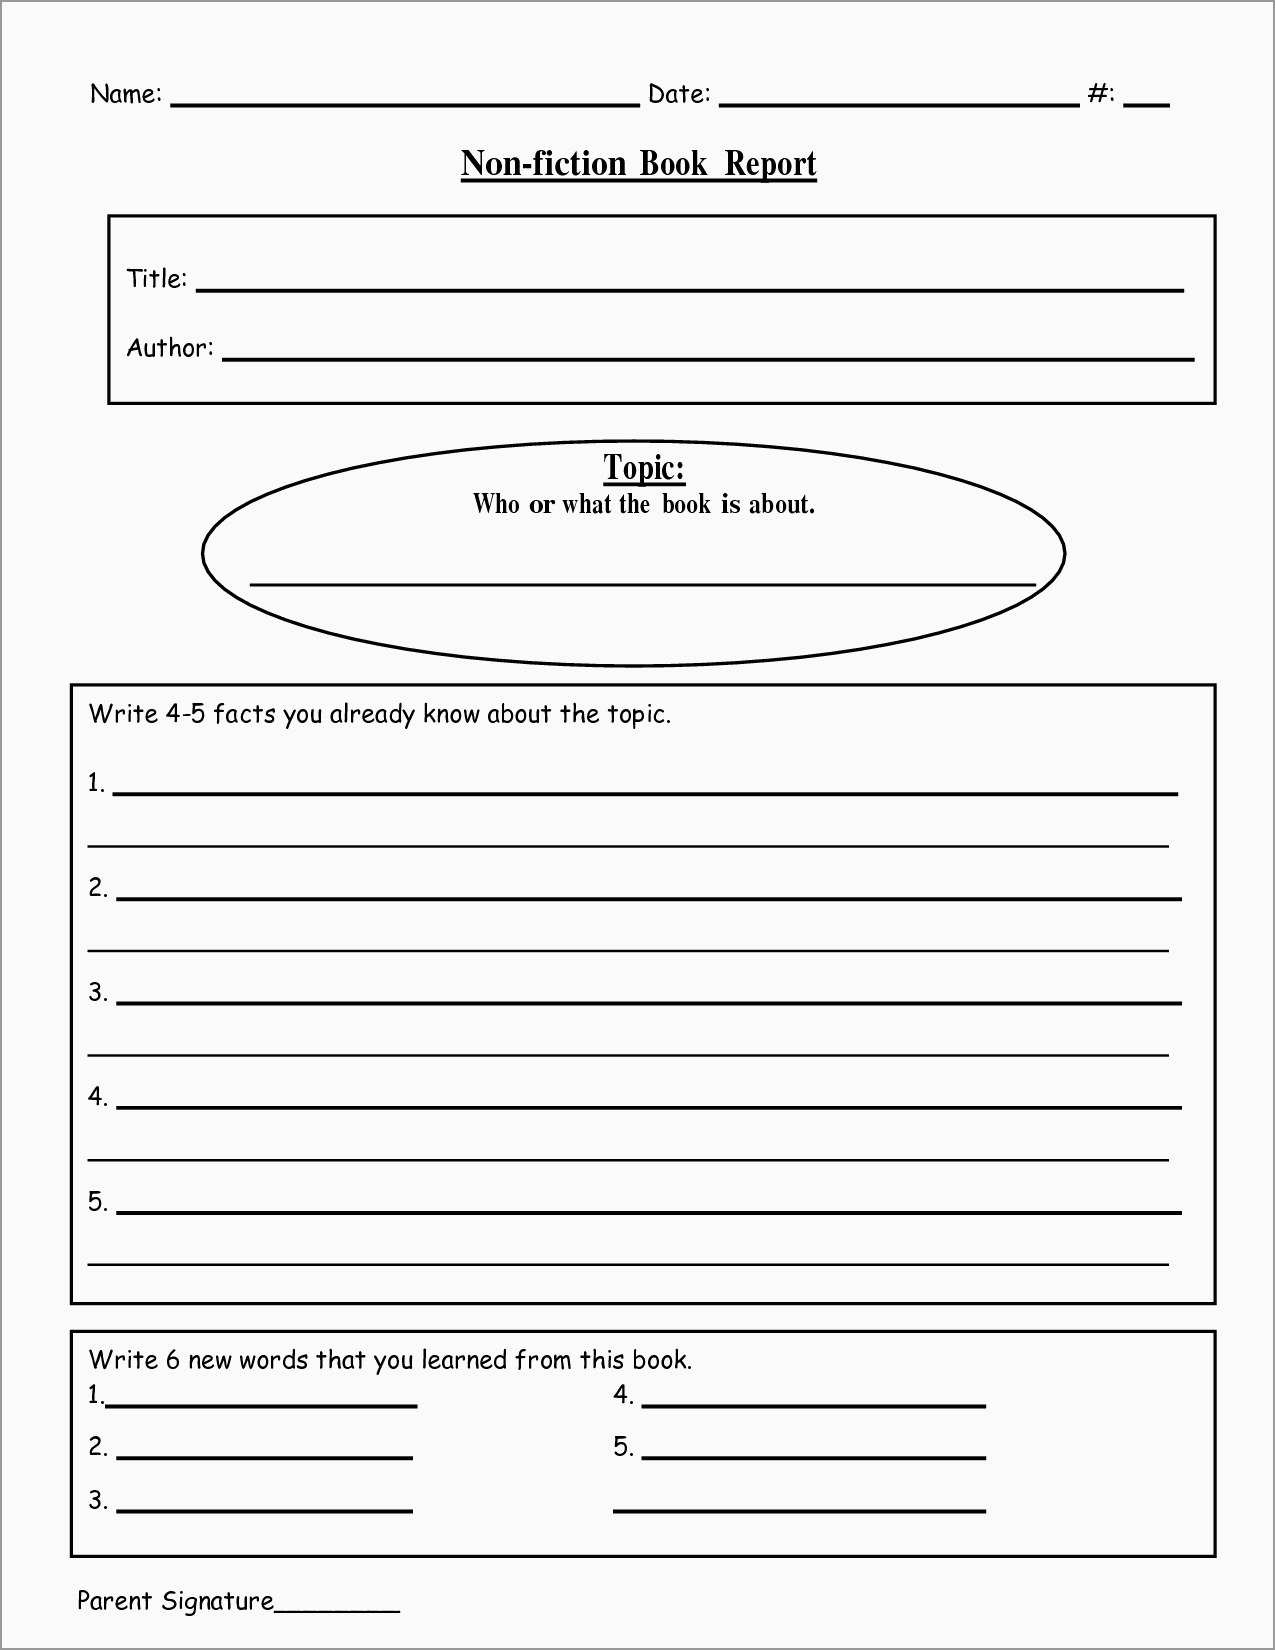 Inspirational 2Nd Grade Book Report Template Free | Best Of Template - Free Printable Book Report Forms For Second Grade